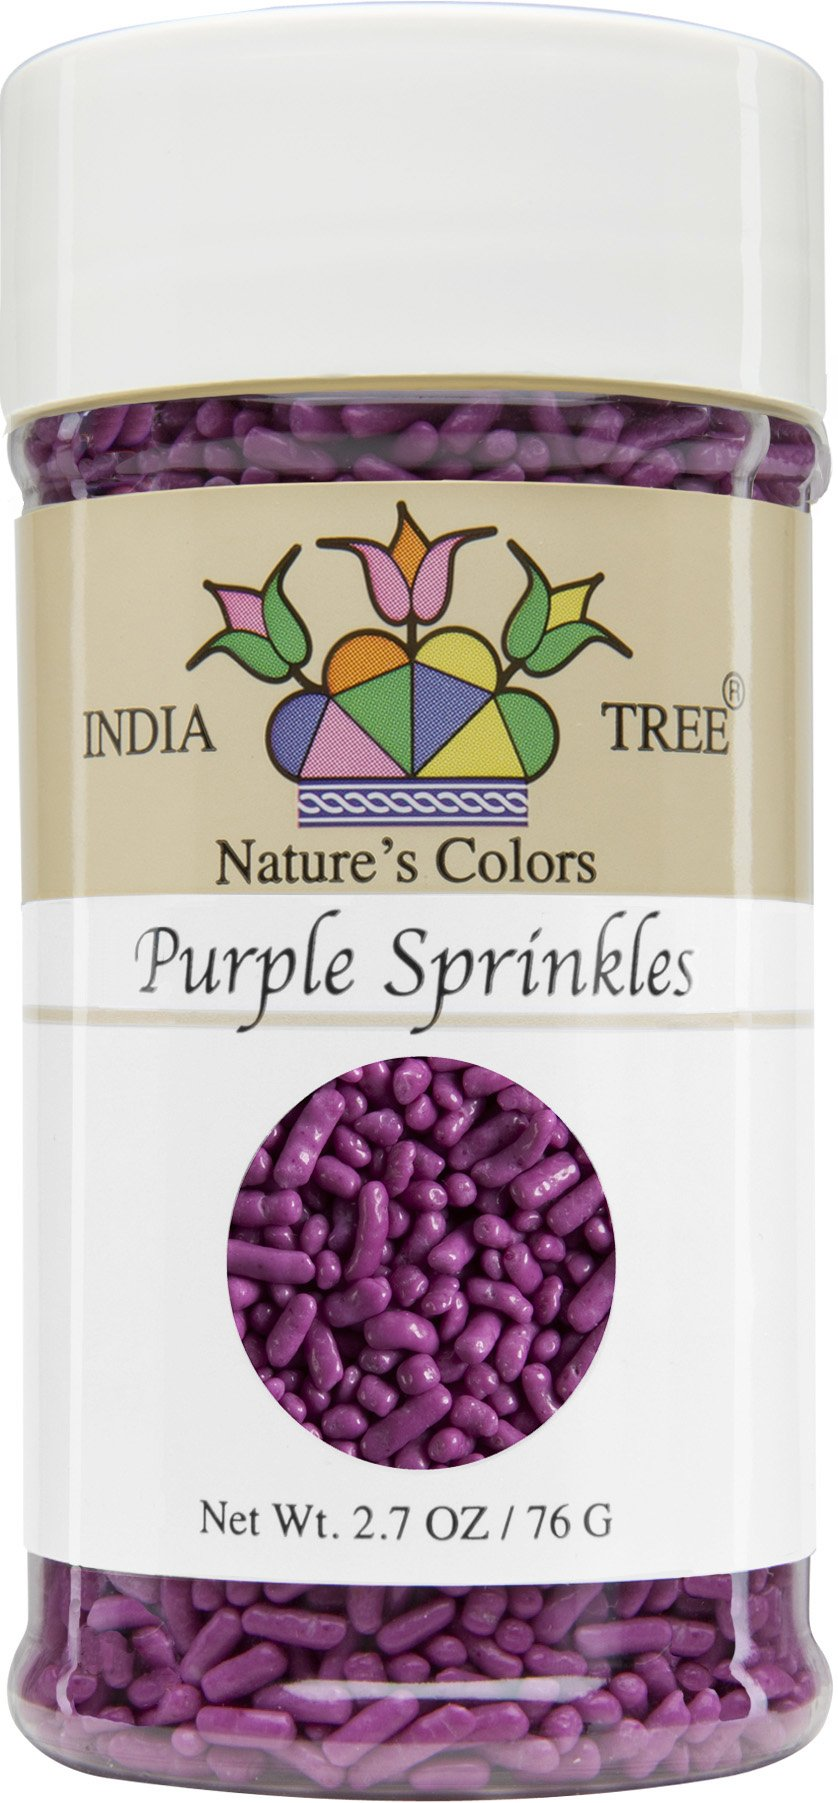 India Tree Nature's Colors Purple Sprinkles, 2.7 Ounce